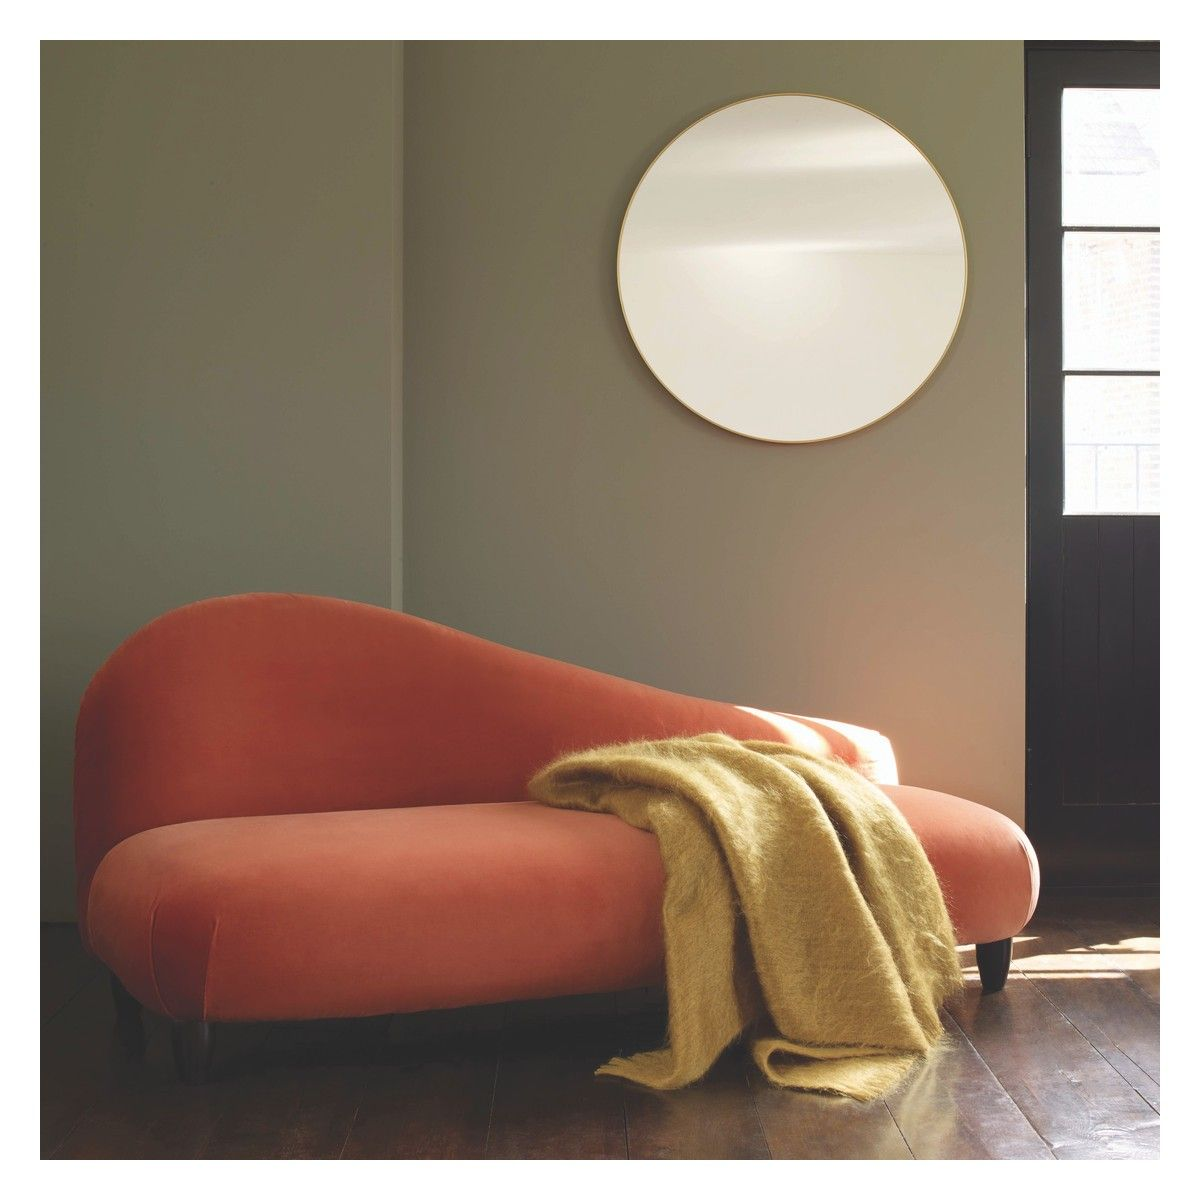 Patsy large round gold wall mirror d82cm gold wall mirror gold patsy large round gold wall mirror d82cm amipublicfo Gallery